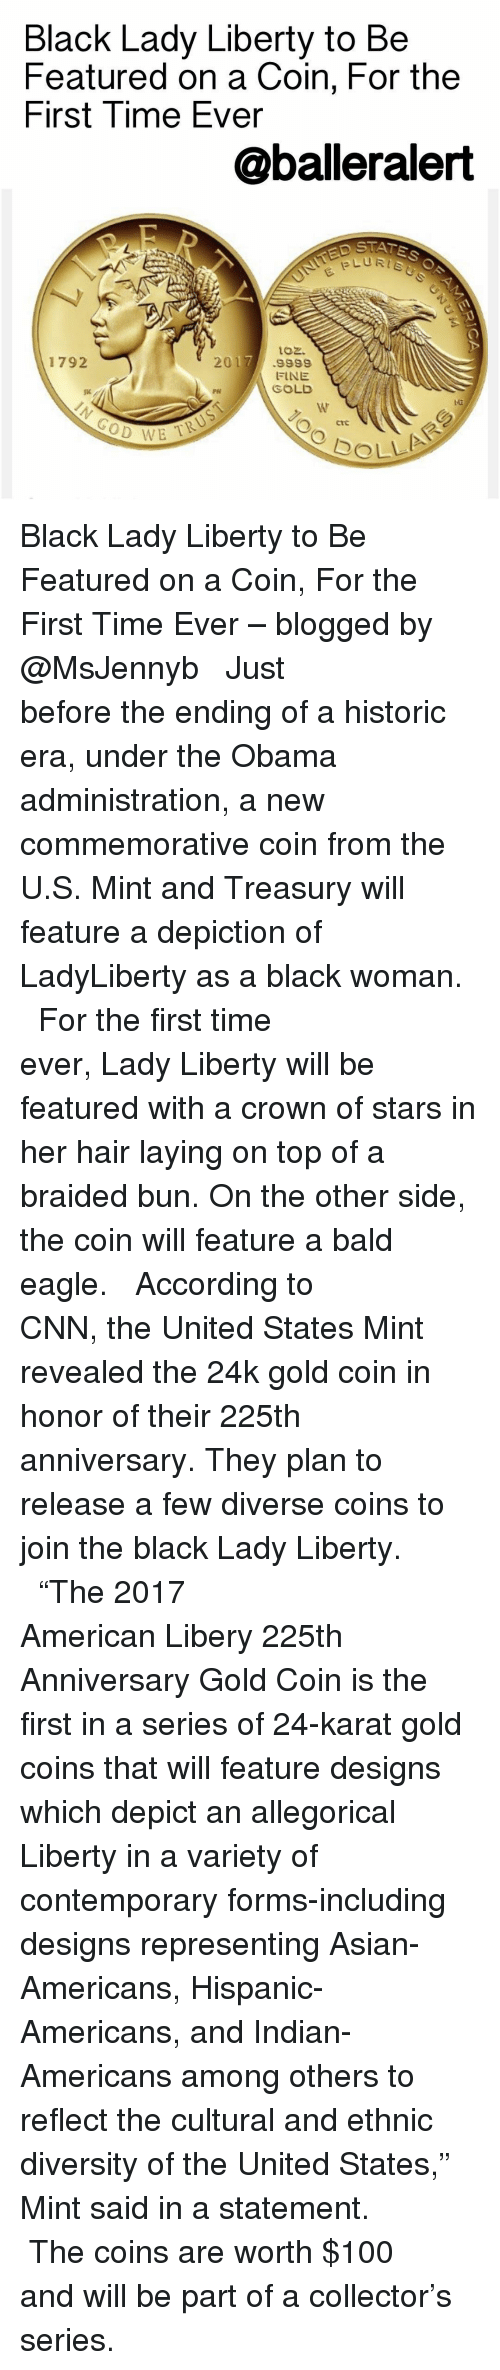 """Asian, Baller Alert, and Braids: Black Lady Liberty to Be  Featured on a Coin, For the  First Time Ever  @baller alert  toz.  1792  2017  9999  FINE  GOLD  PH  L WE TK  SOLLA Black Lady Liberty to Be Featured on a Coin, For the First Time Ever – blogged by @MsJennyb ⠀⠀⠀⠀⠀⠀⠀⠀⠀ ⠀⠀⠀⠀⠀⠀⠀⠀⠀ Just before the ending of a historic era, under the Obama administration, a new commemorative coin from the U.S. Mint and Treasury will feature a depiction of LadyLiberty as a black woman. ⠀⠀⠀⠀⠀⠀⠀⠀⠀ ⠀⠀⠀⠀⠀⠀⠀⠀⠀ For the first time ever, Lady Liberty will be featured with a crown of stars in her hair laying on top of a braided bun. On the other side, the coin will feature a bald eagle. ⠀⠀⠀⠀⠀⠀⠀⠀⠀ ⠀⠀⠀⠀⠀⠀⠀⠀⠀ According to CNN, the United States Mint revealed the 24k gold coin in honor of their 225th anniversary. They plan to release a few diverse coins to join the black Lady Liberty. ⠀⠀⠀⠀⠀⠀⠀⠀⠀ ⠀⠀⠀⠀⠀⠀⠀⠀⠀ """"The 2017 American Libery 225th Anniversary Gold Coin is the first in a series of 24-karat gold coins that will feature designs which depict an allegorical Liberty in a variety of contemporary forms-including designs representing Asian-Americans, Hispanic-Americans, and Indian-Americans among others to reflect the cultural and ethnic diversity of the United States,"""" Mint said in a statement. ⠀⠀⠀⠀⠀⠀⠀⠀⠀ ⠀⠀⠀⠀⠀⠀⠀⠀⠀ The coins are worth $100 and will be part of a collector's series."""